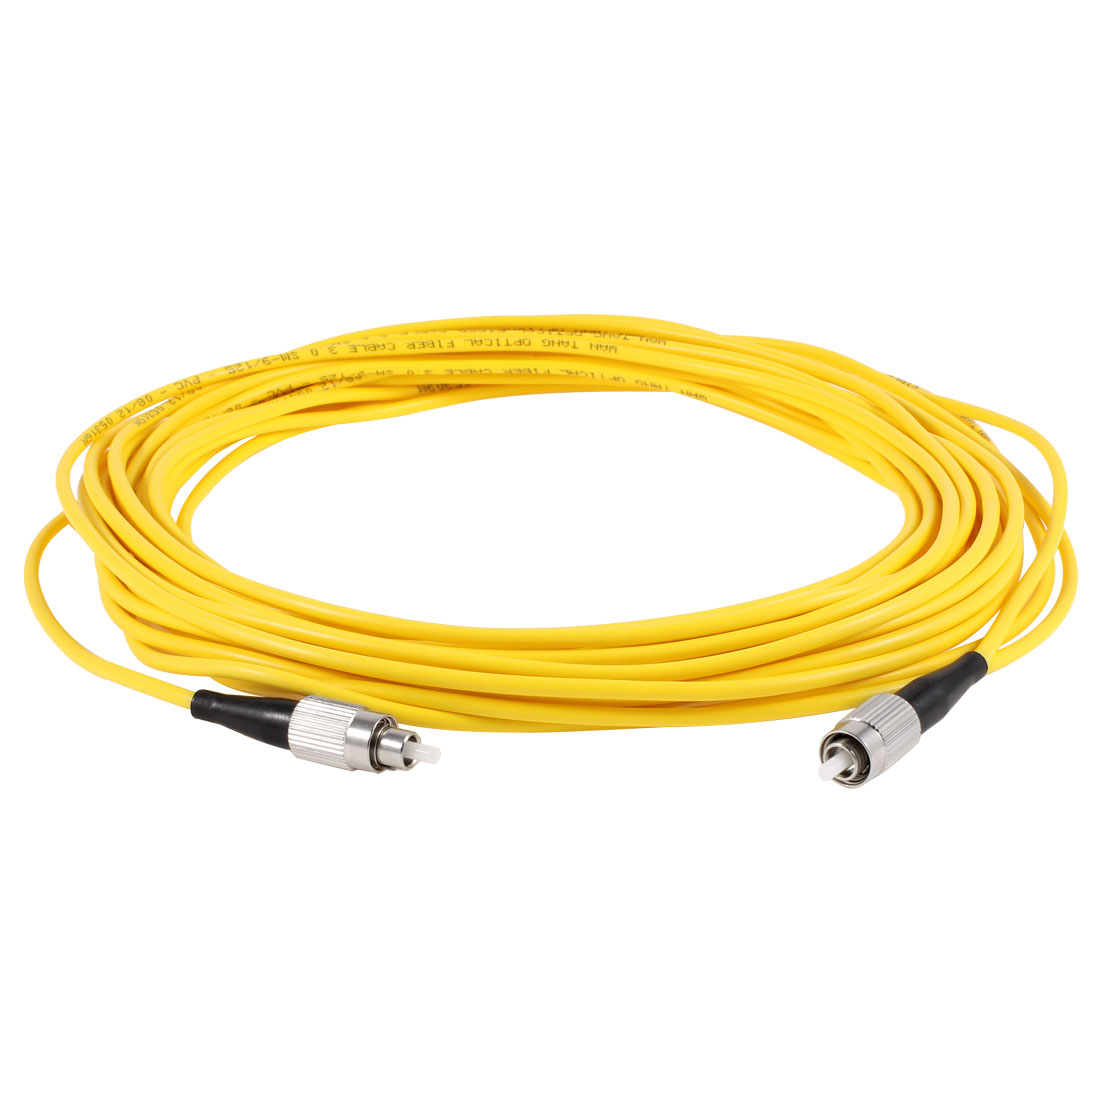 Yellow 33 foot 10M Fiber Optic Cable FC to FC SM Single Model SX 9/125 3.0